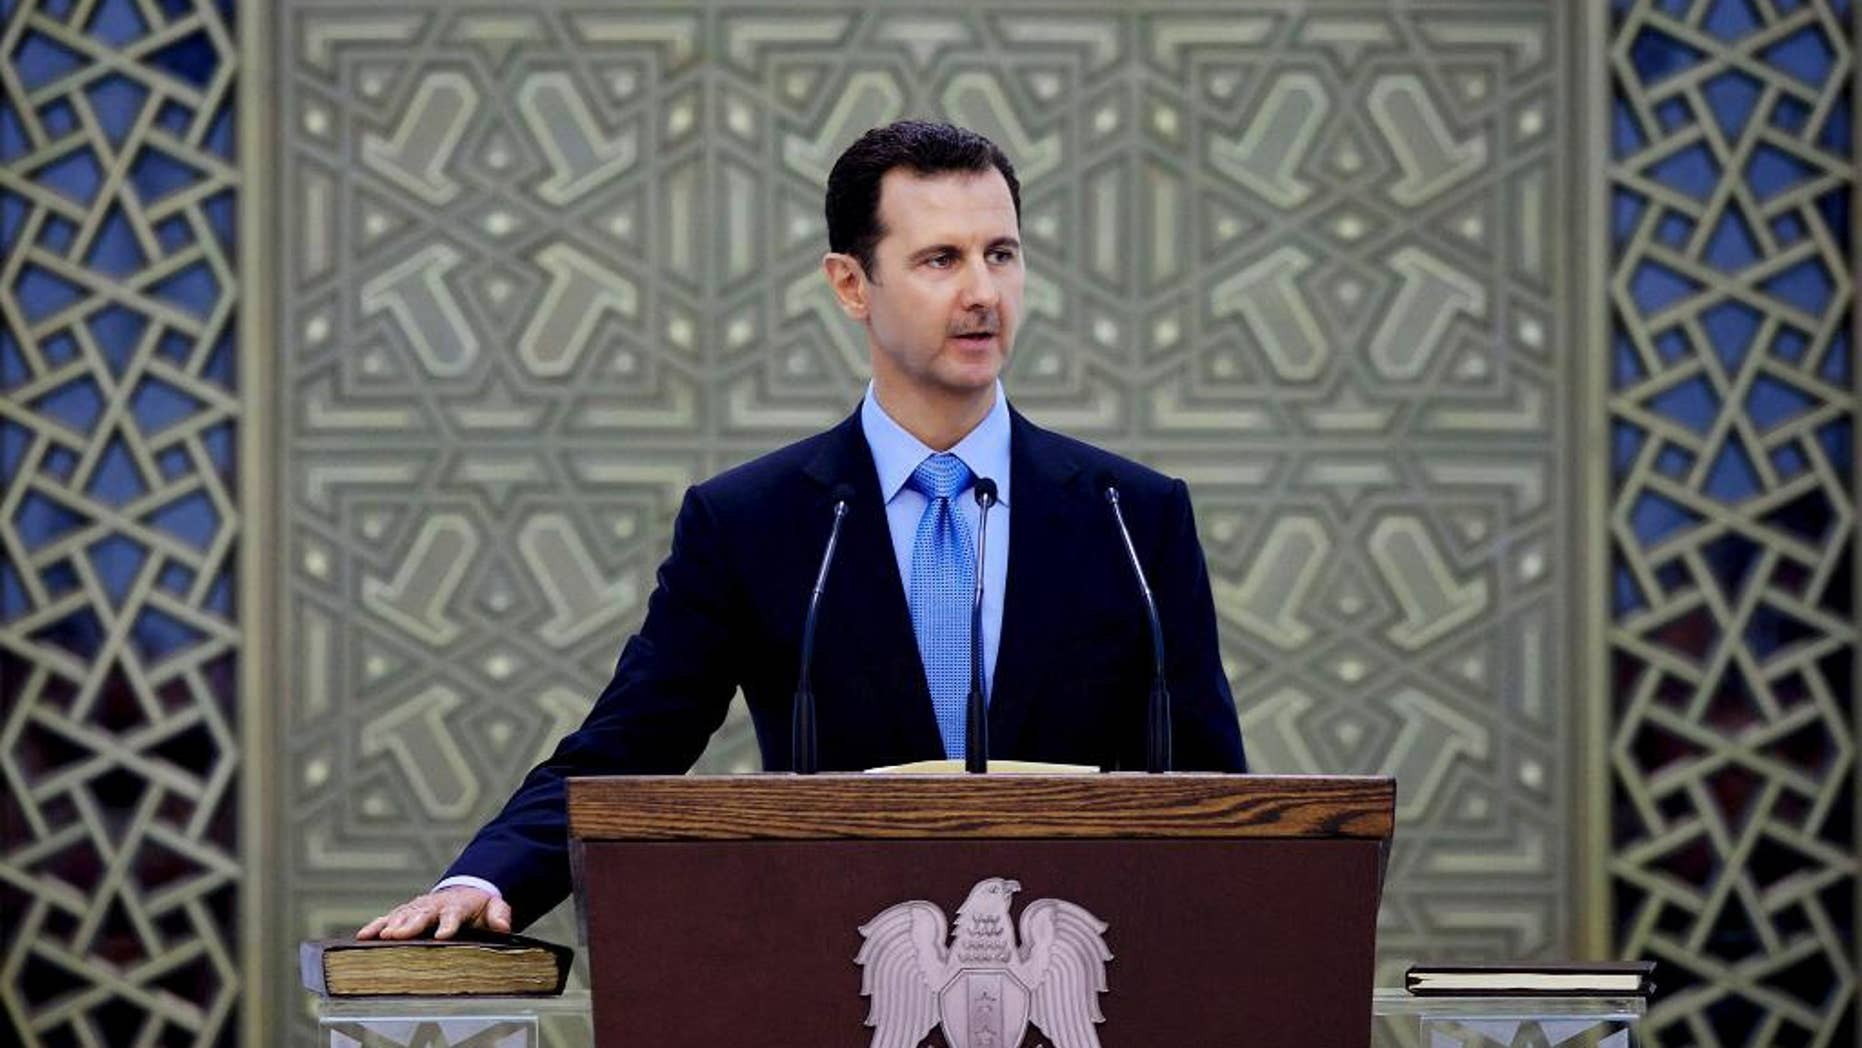 FILE - In this Wednesday, July 16, 2014 file photo released by the Syrian official news agency SANA, Syria's President Bashar Assad is sworn for his third, seven-year term, in Damascus, Syria. Assad said in remarks published Wednesday that U.S.-led airstrikes targeting Islamic State group militants in his country are neither serious nor efficient, claiming they have failed to produce any tangible results. (AP Photo/SANA, File)